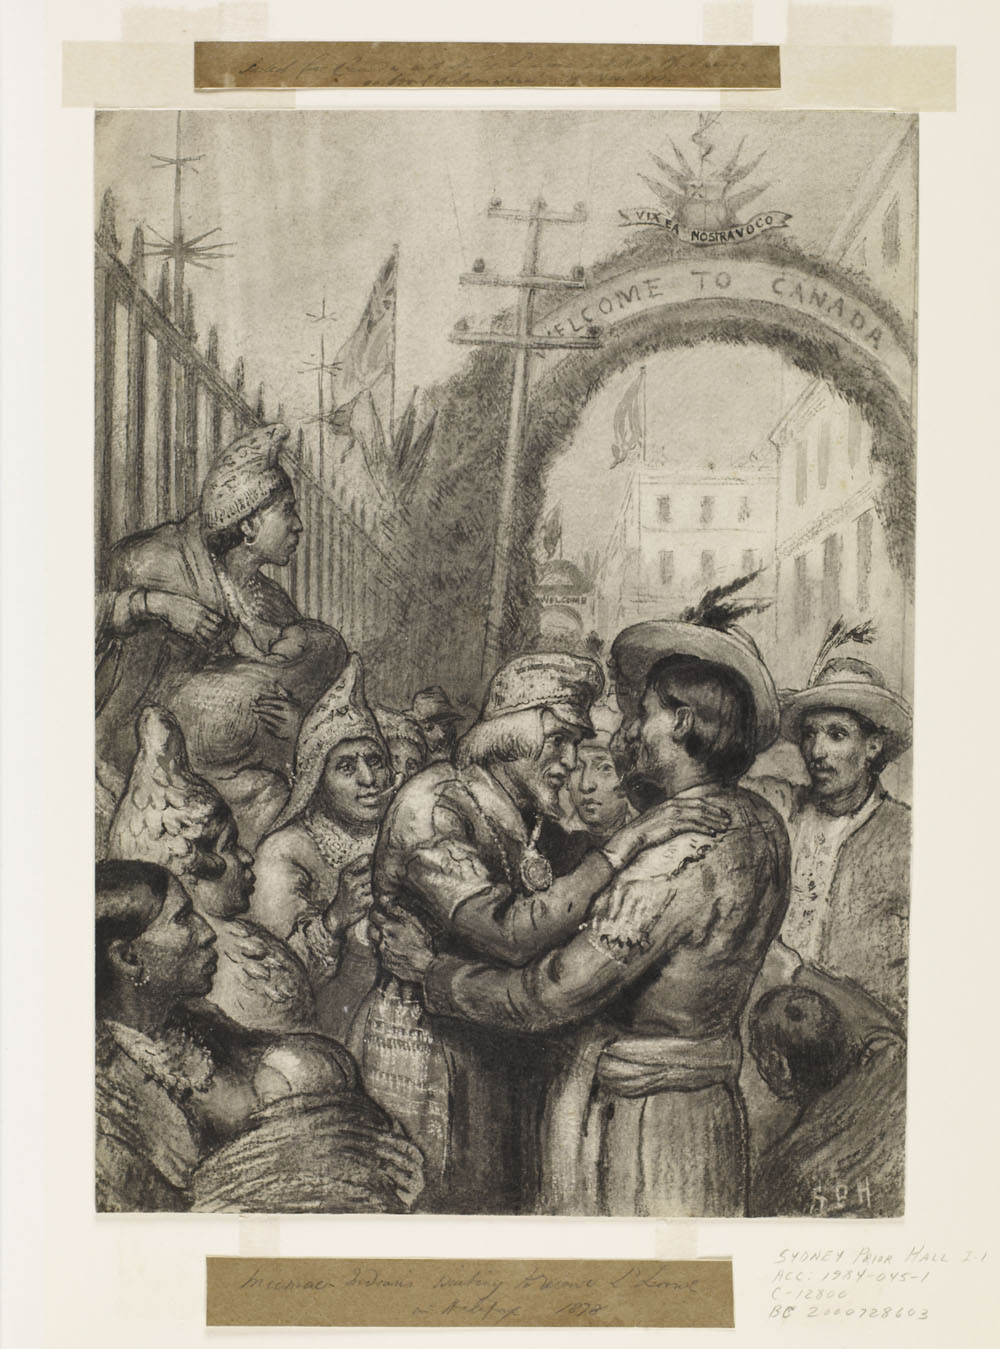 """Drawing of a group of Indigenous people receiving a lord. Behind is a """"Welcome to Canada"""" arch."""